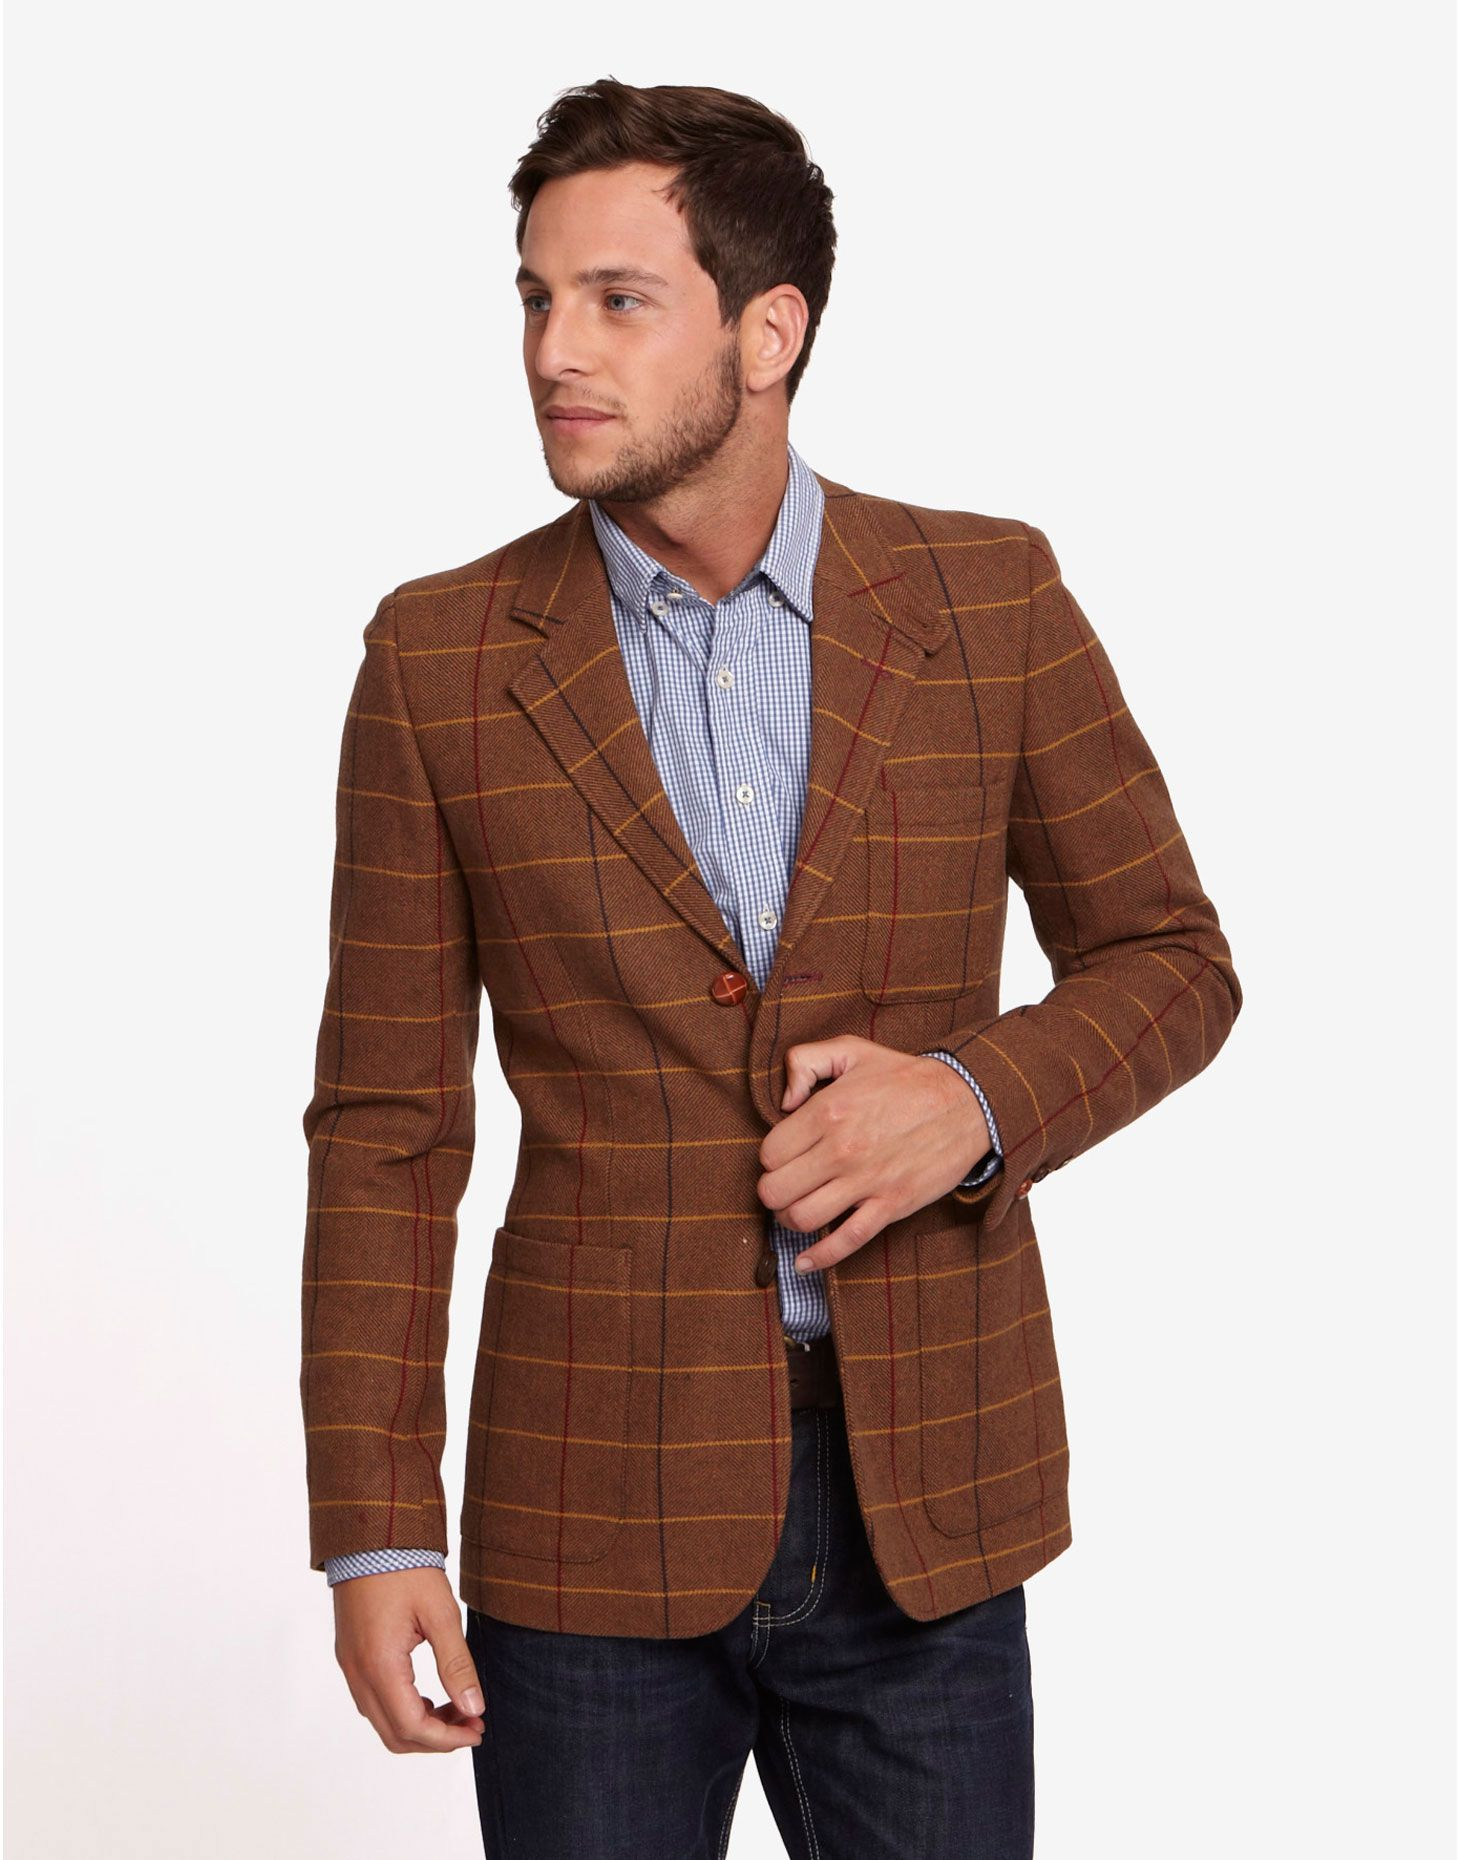 Tie your look together with this men's tweed suit vest by U.S. Polo Assn. Featuring notched lapels, besom pockets and a glossy satin back, this dress vest offers a sleek, smart silhouette. Whether layered under a blazer or over a collared shirt, this vest is sure to sharpen both formal and casual looks.